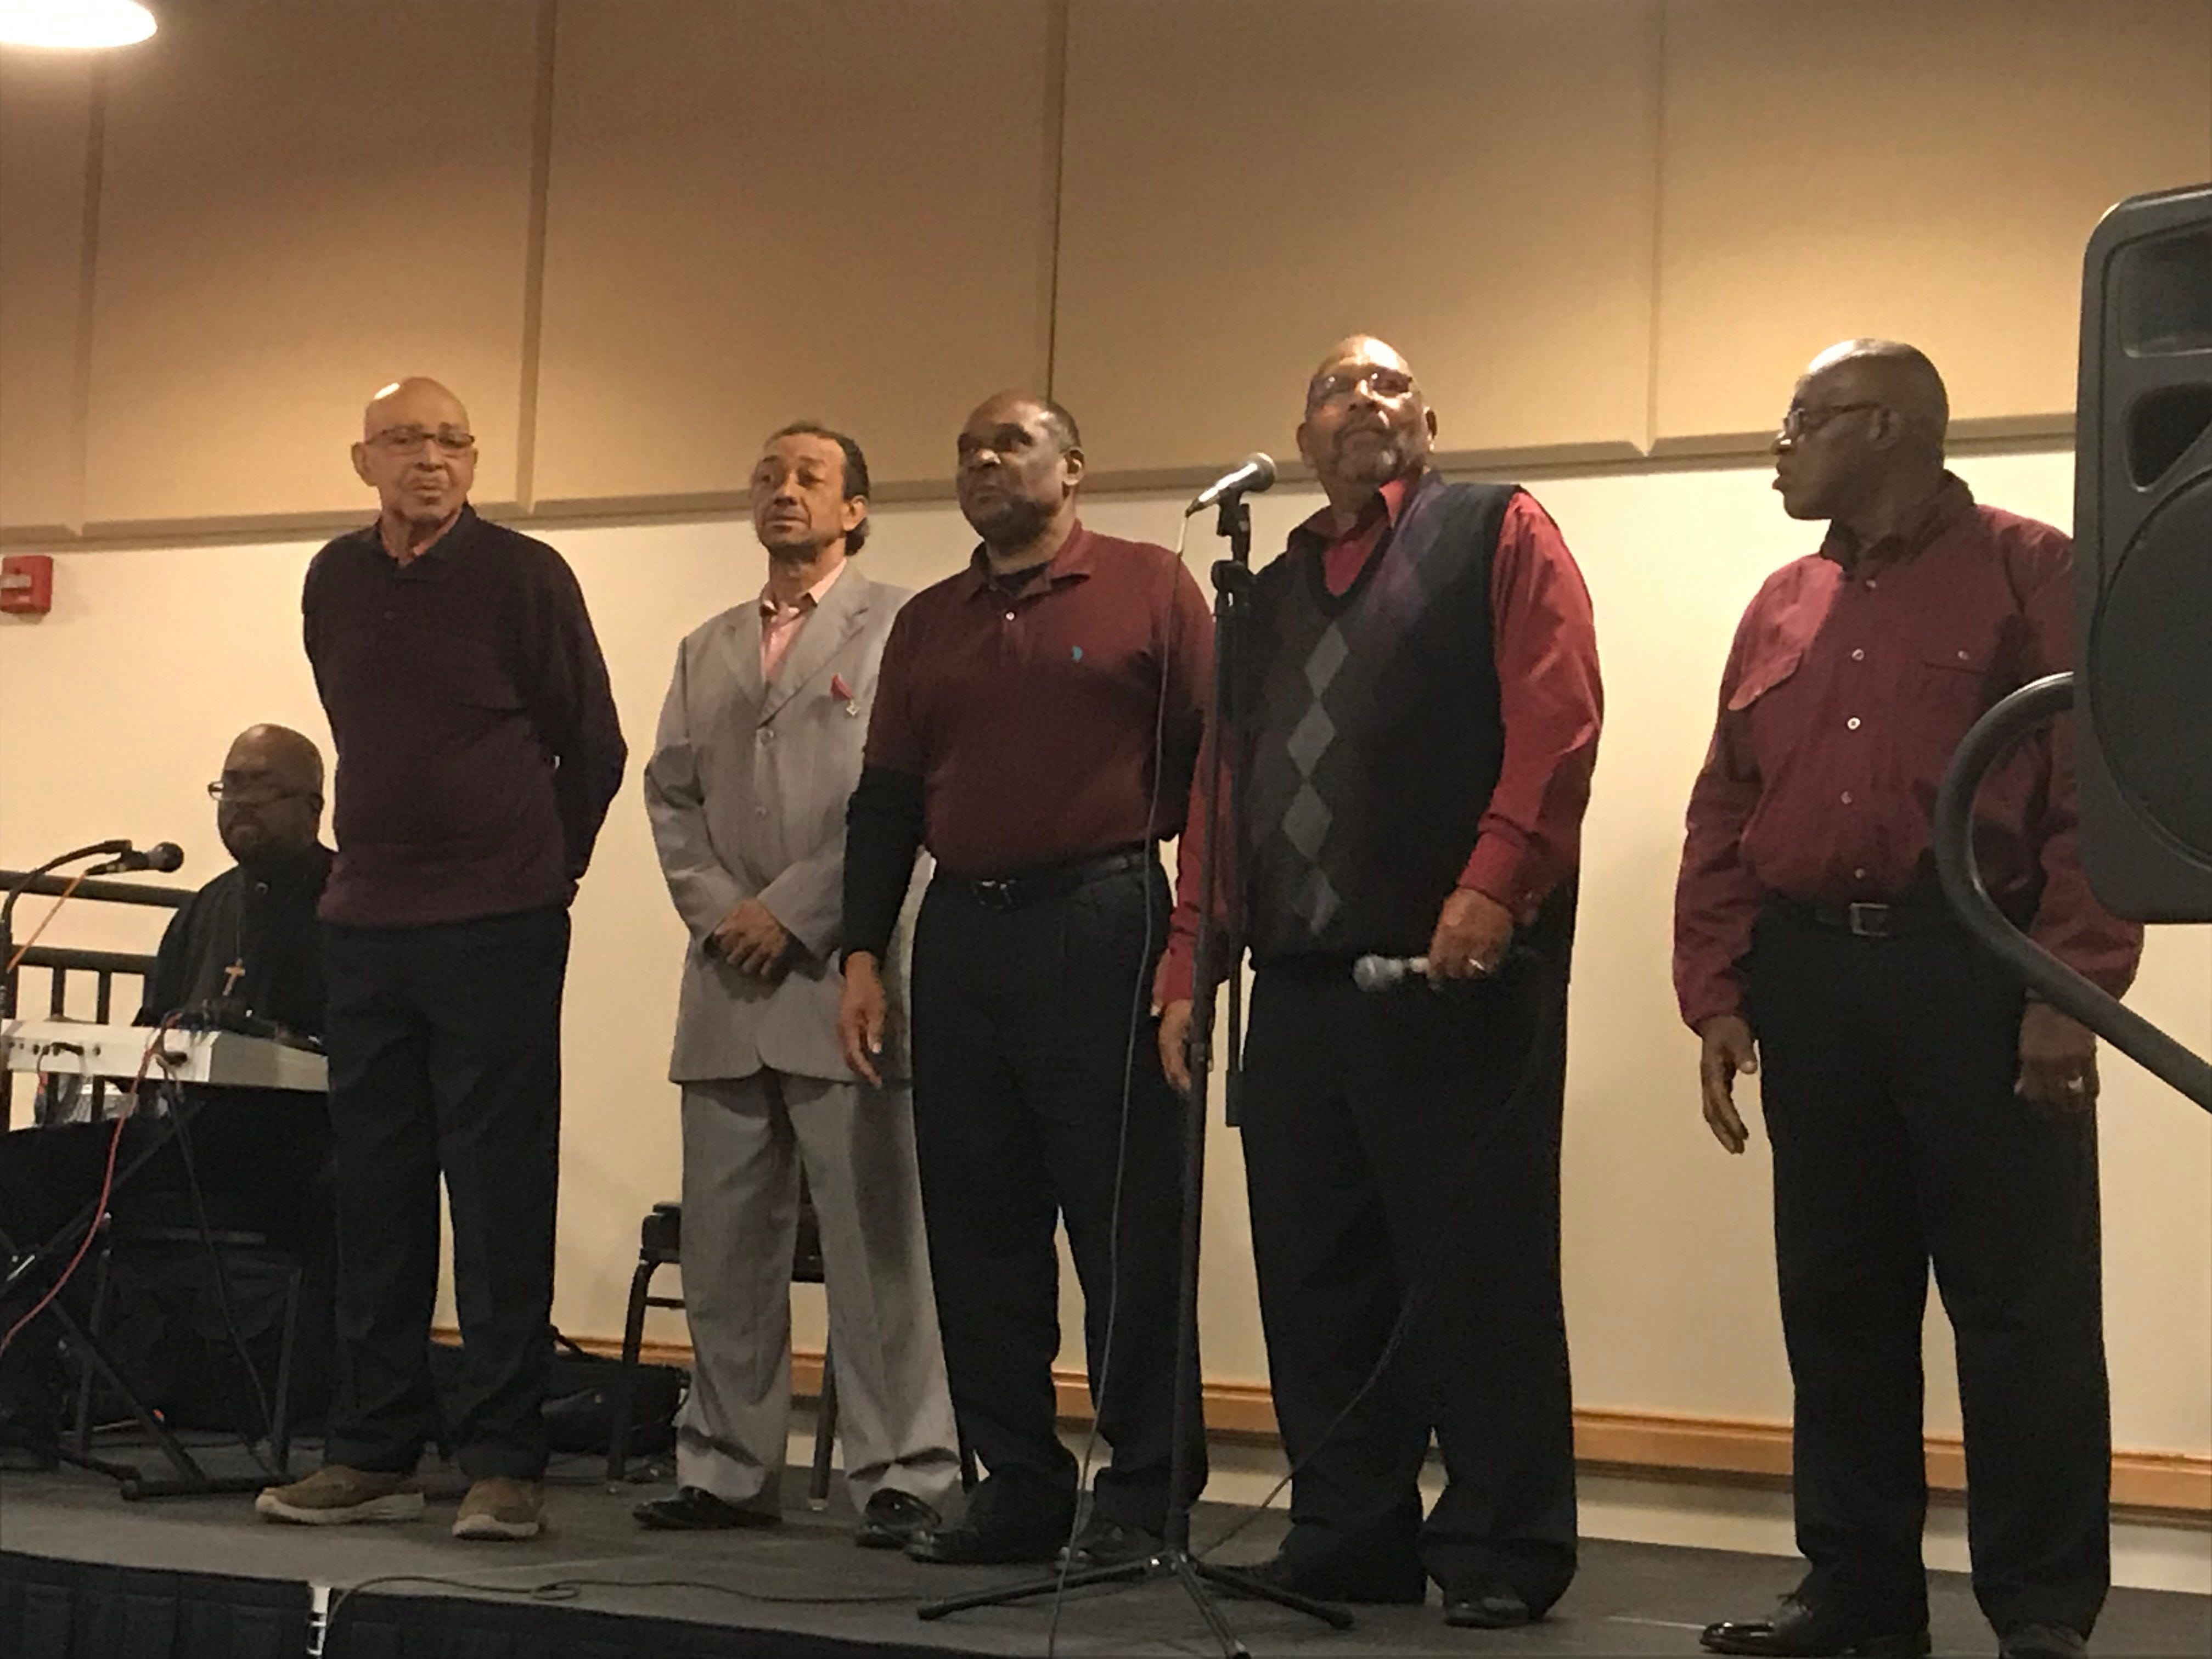 Gospel singers Roland Major and the Morris Singers entertain attendees at Eastern Shore Community College's Heritage Festival on Saturday, Feb. 23, 2019.